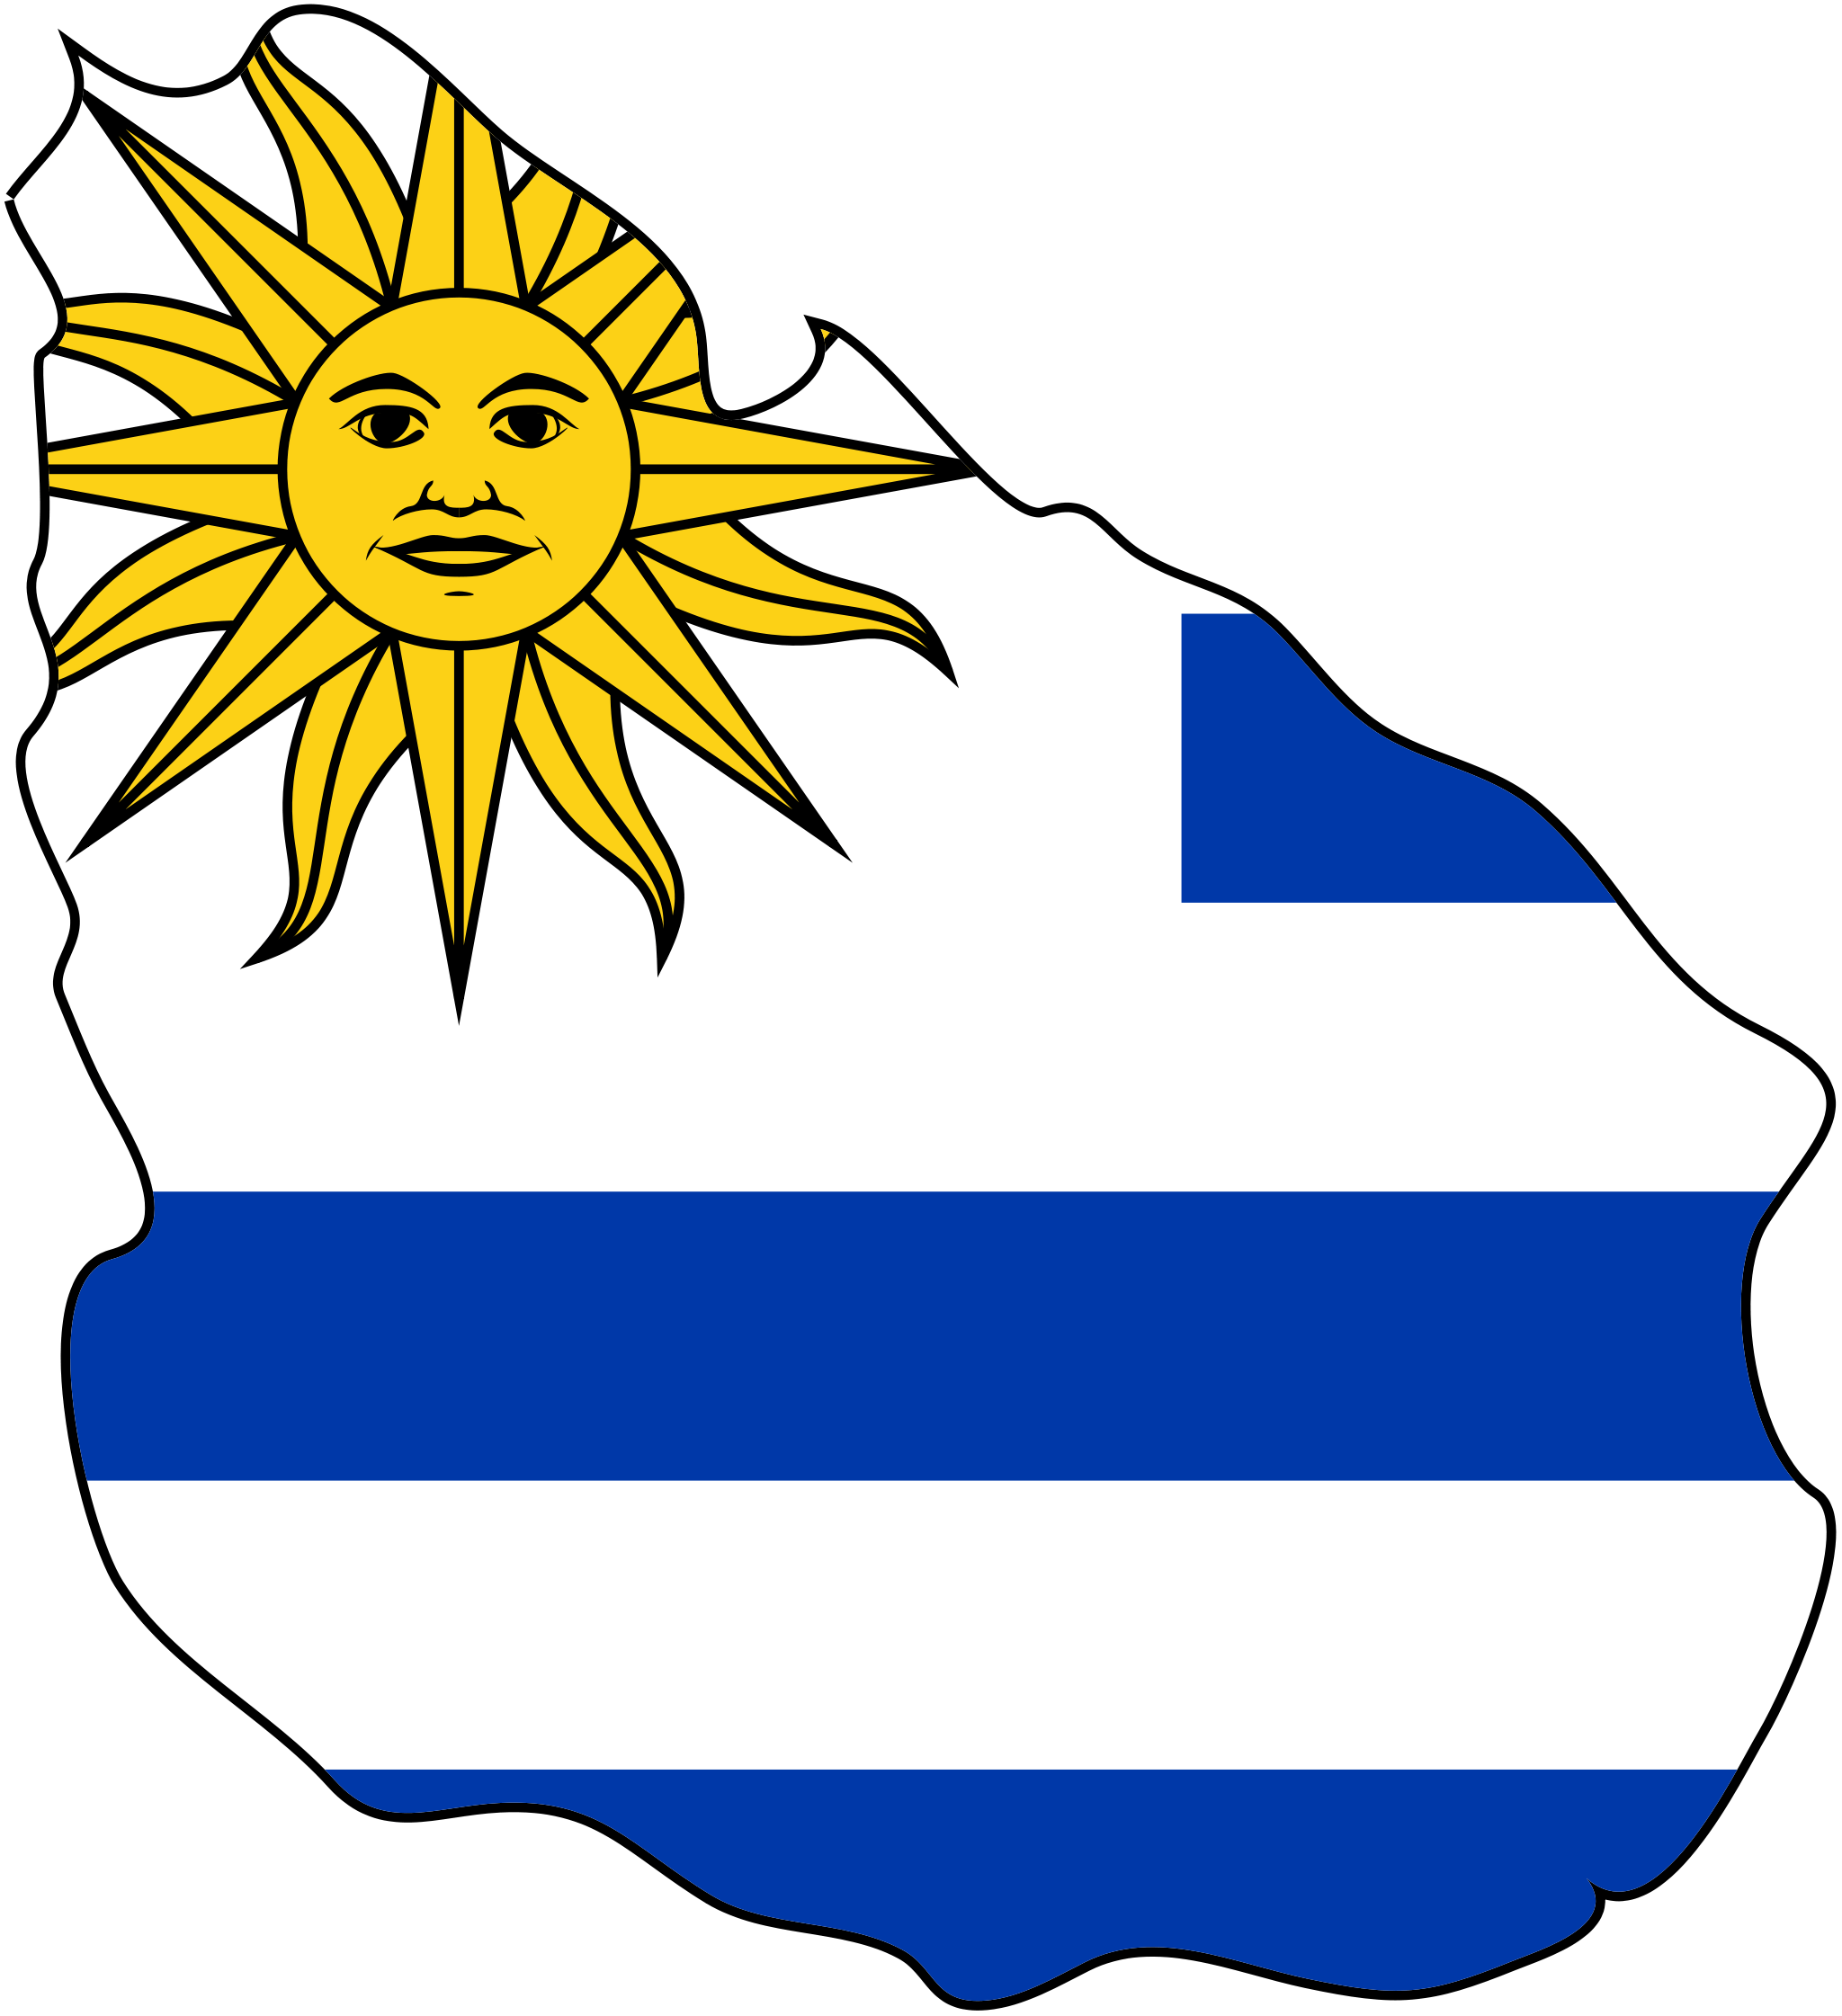 Uruguay Flag Map Mapsofnet Uruguay My LDS Mission Country - Uruguay map png